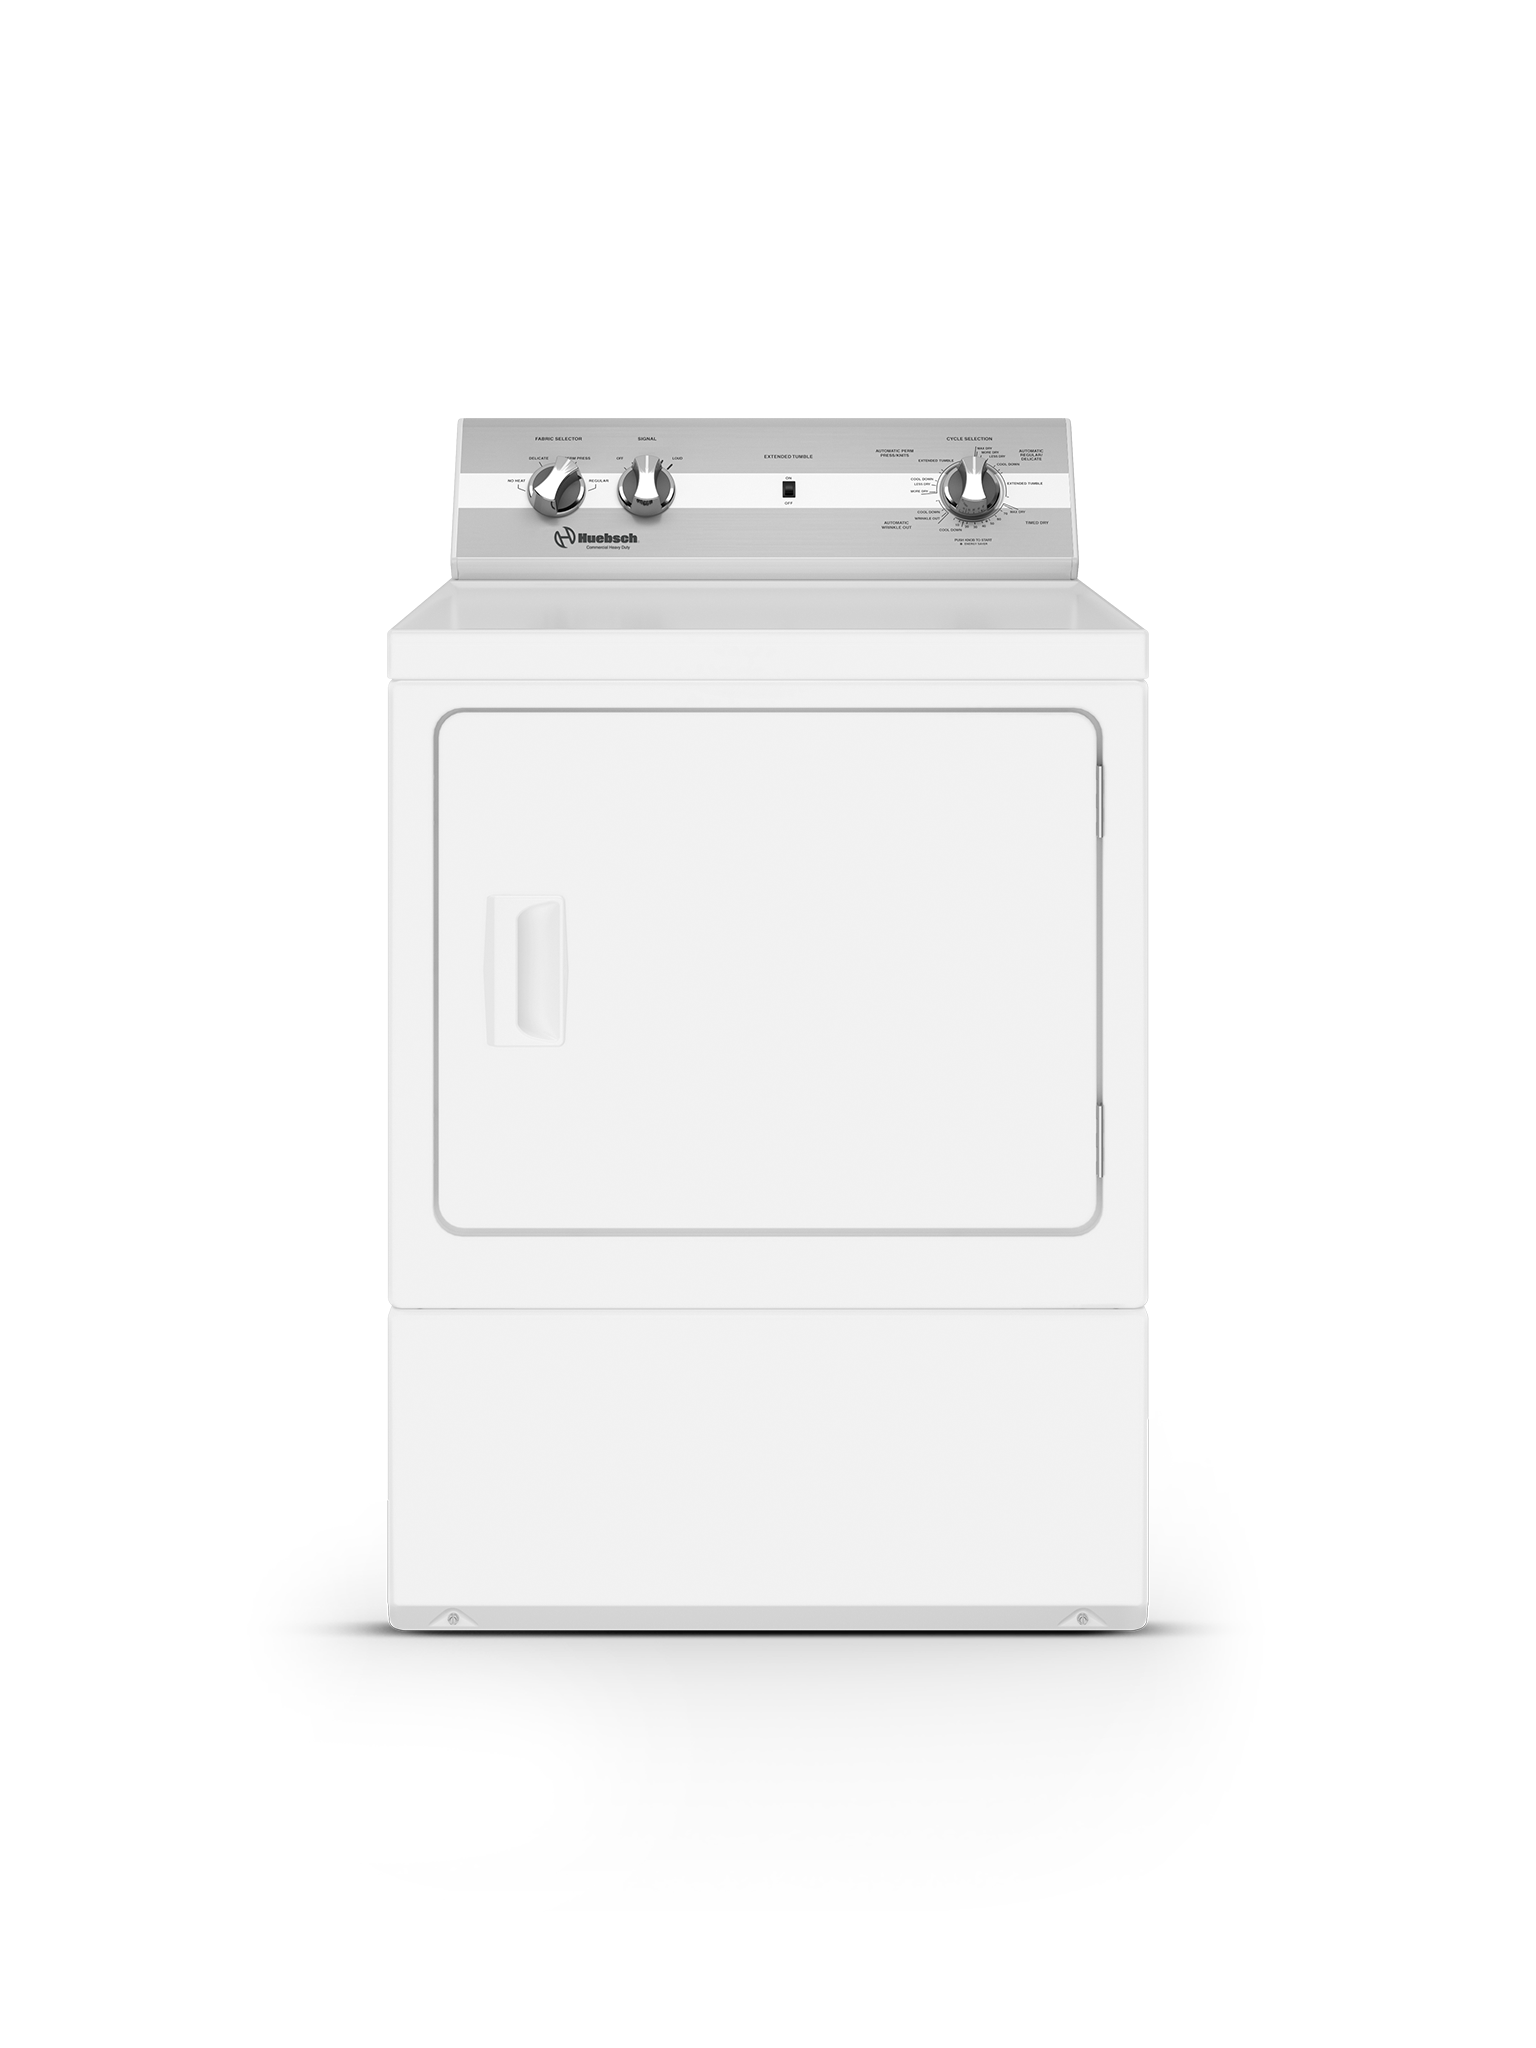 Huebsch Dryer in White color showcased by Corbeil Electro Store